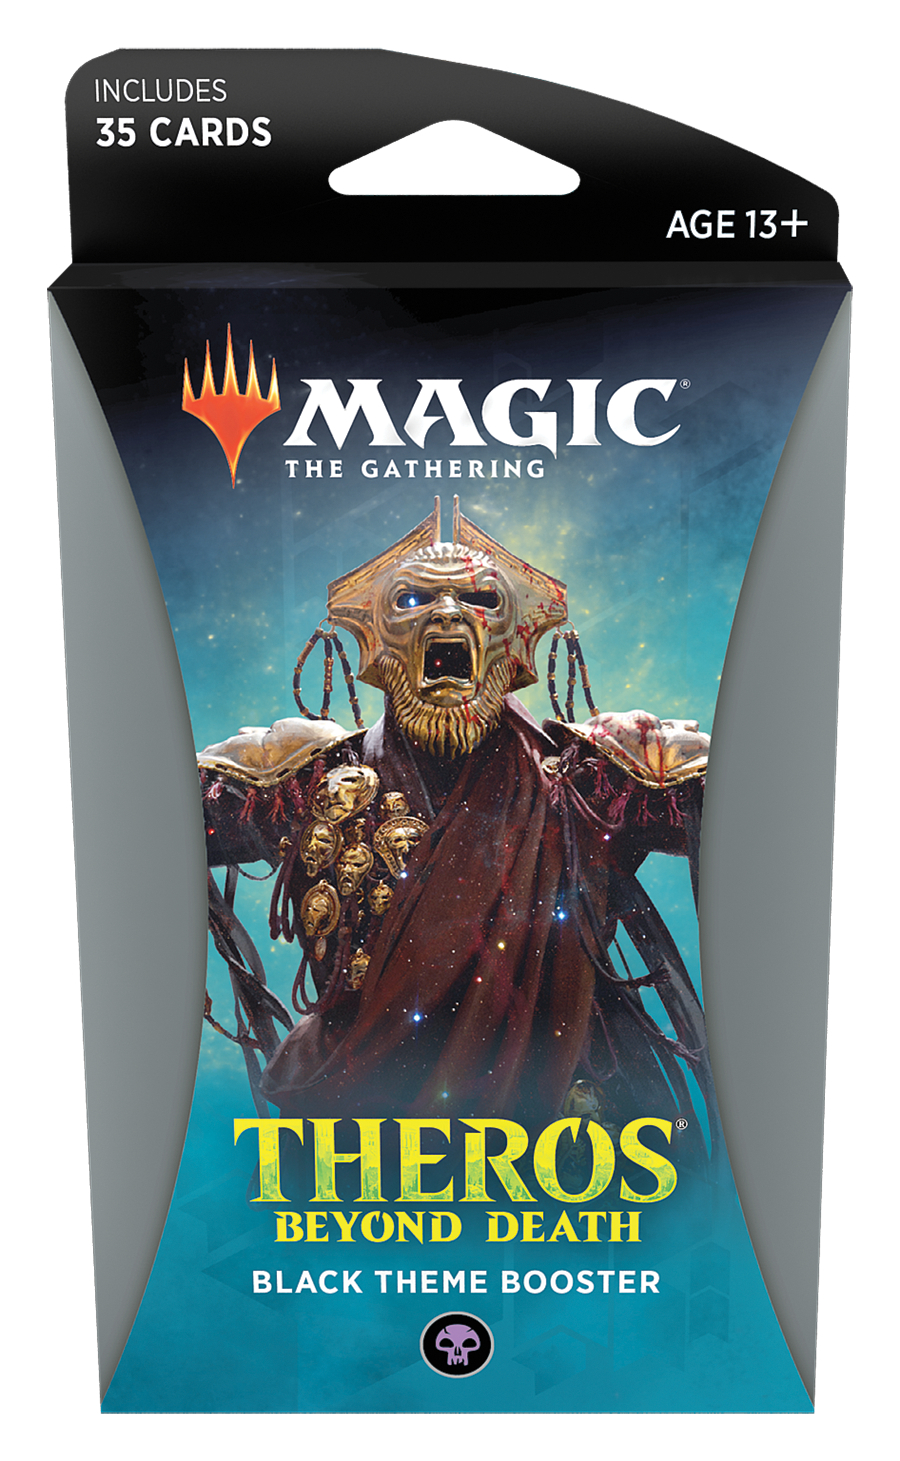 Magic The Gathering: Theros Beyond Death Theme Booster- Black image